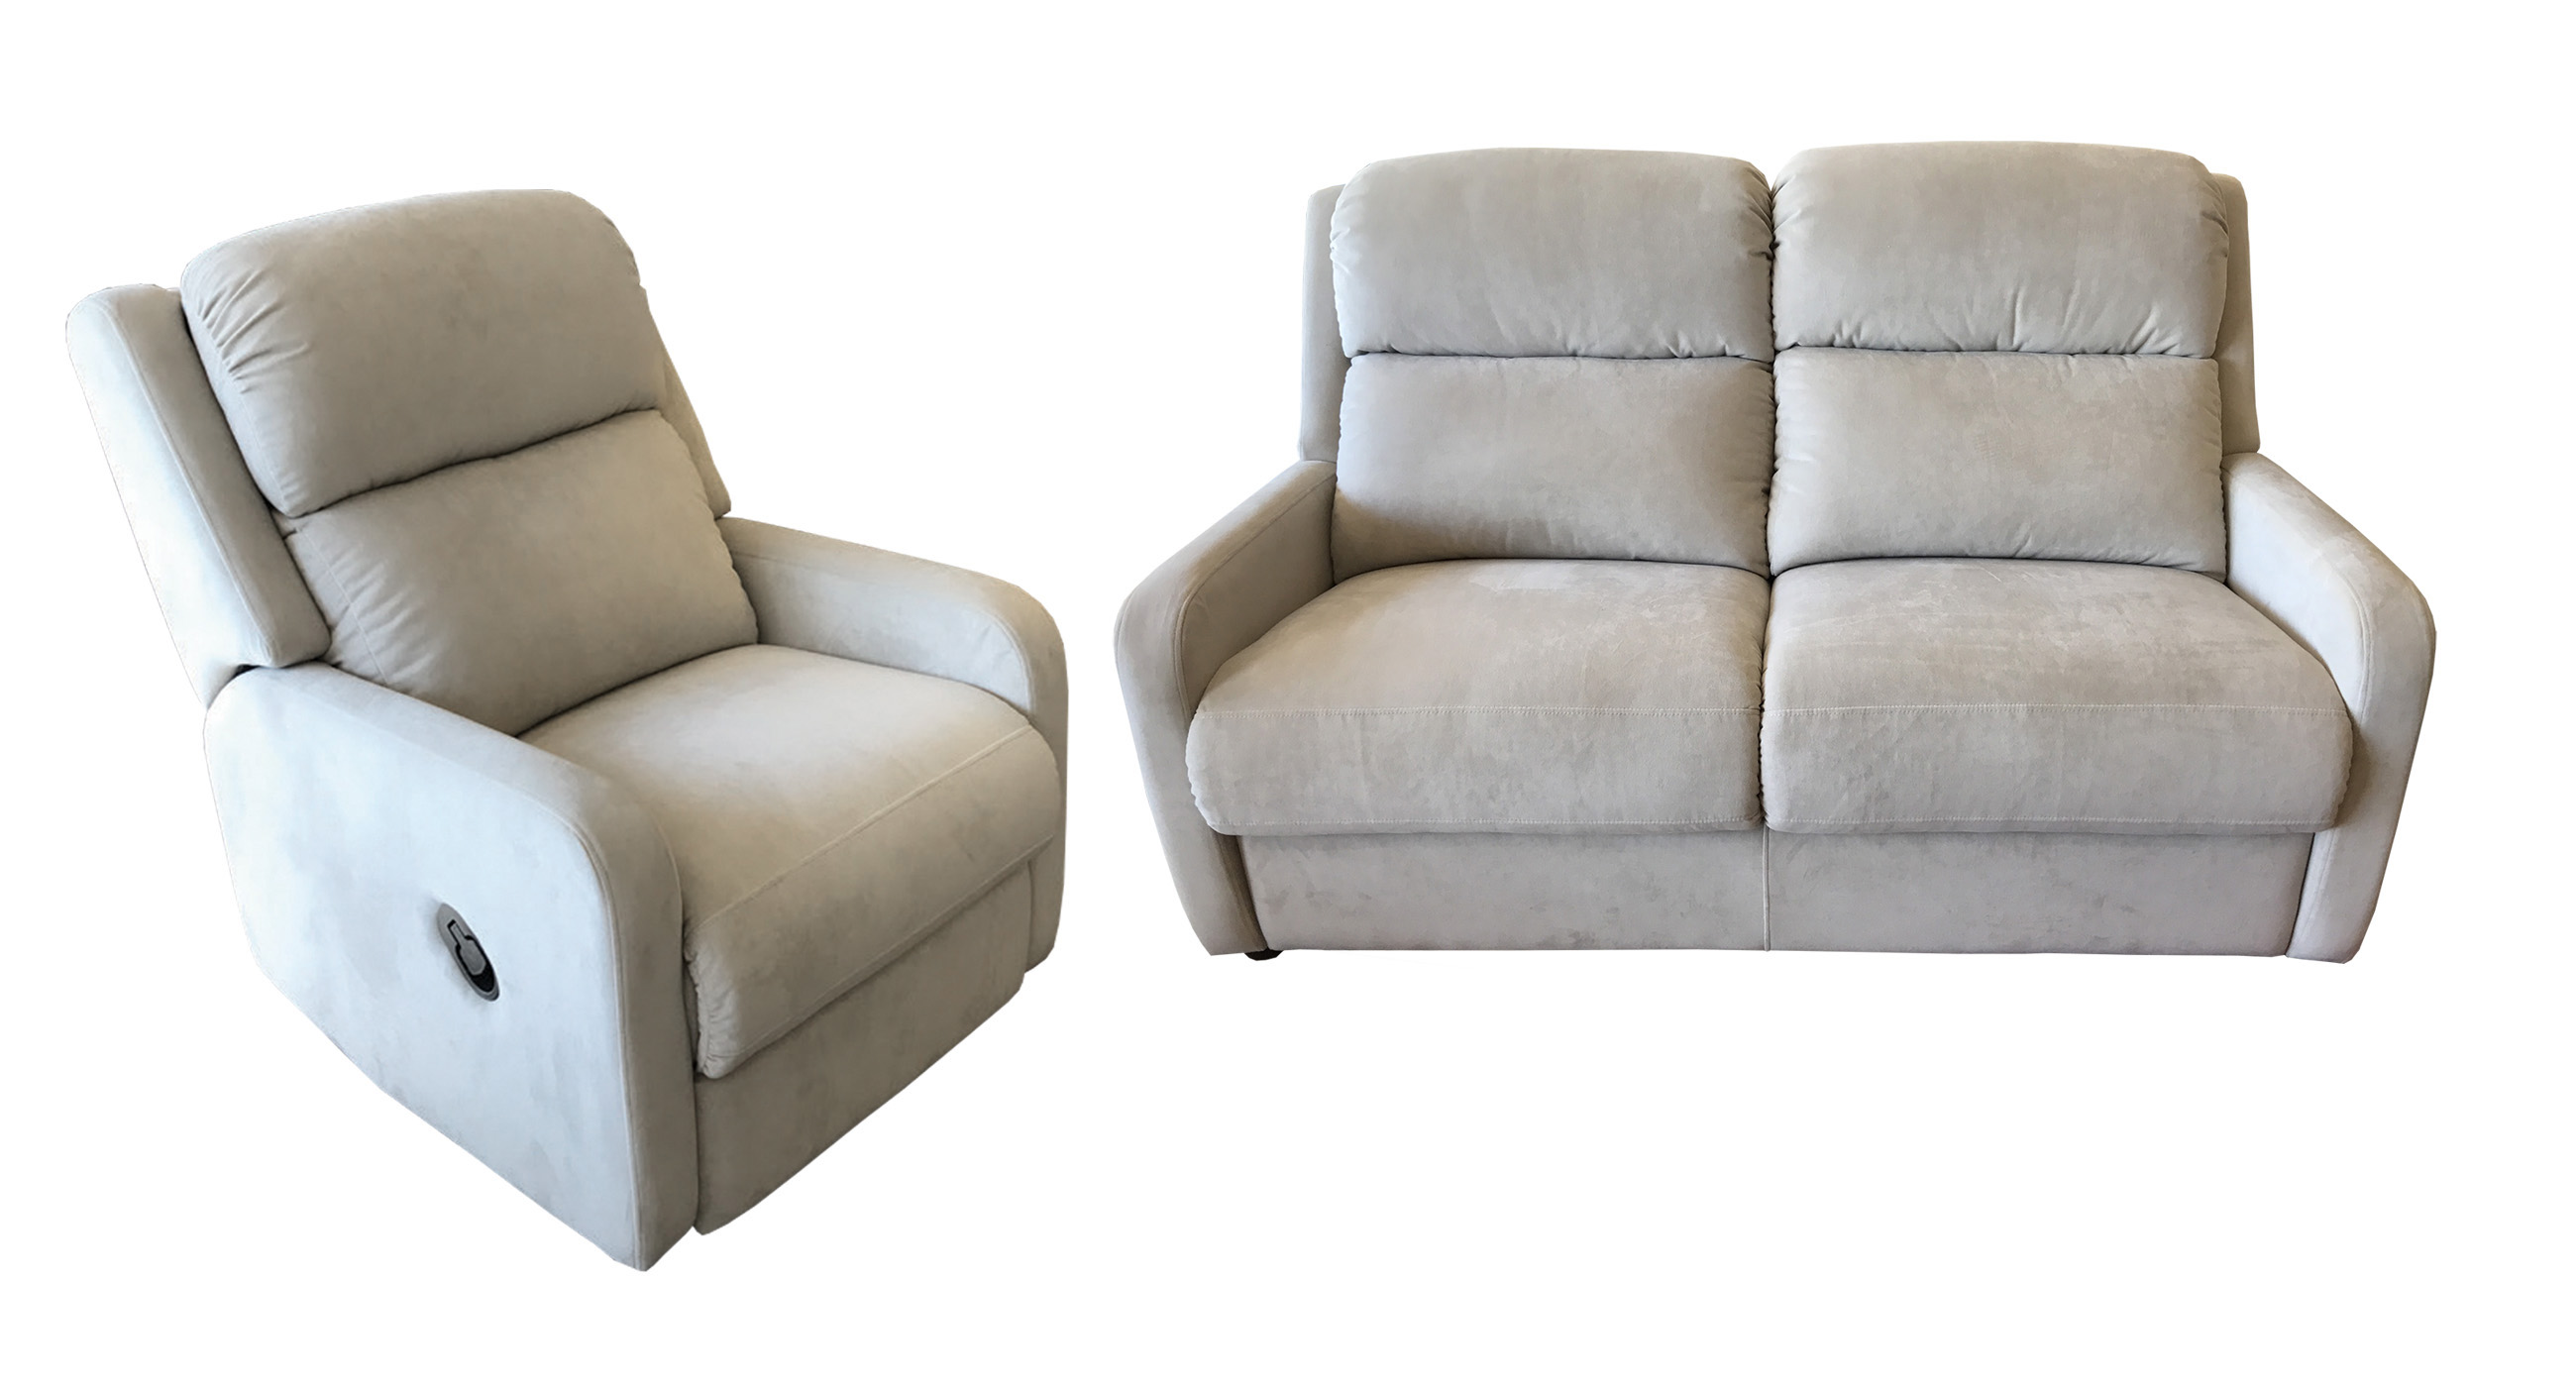 Haley Reclining Sofa and Chairs